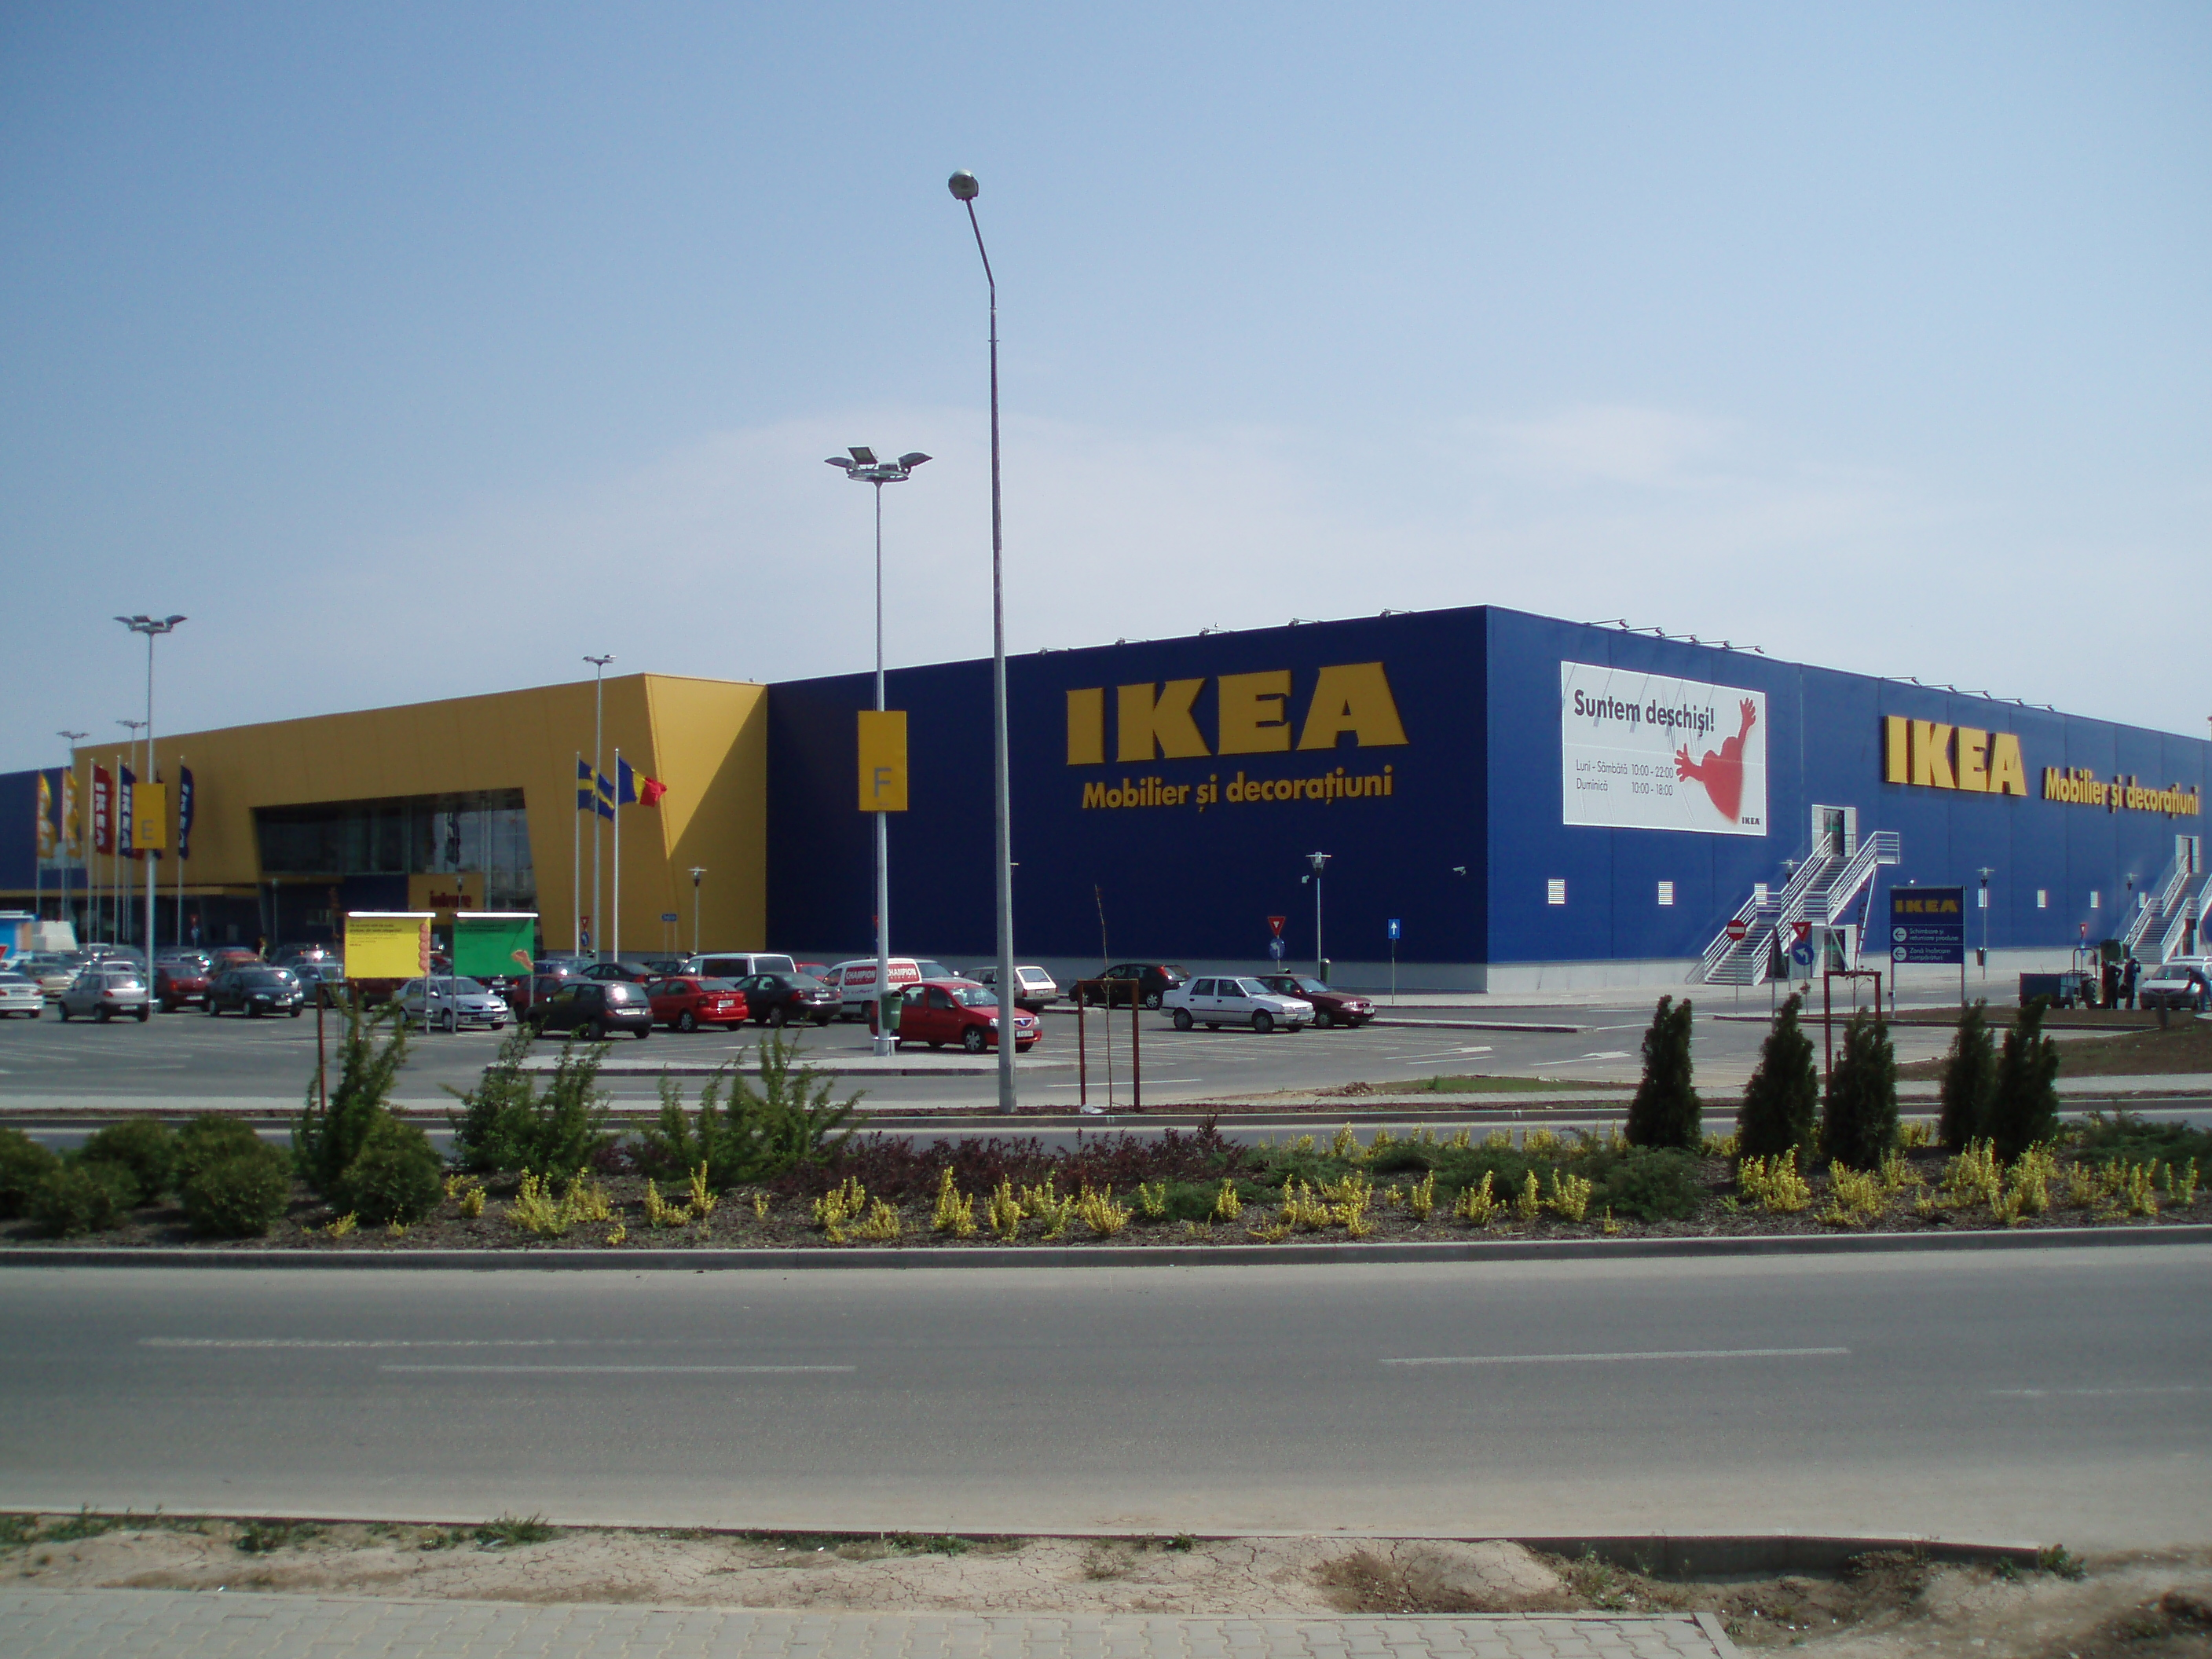 IKEA Romania gets zoning plan approval for second store in Bucharest